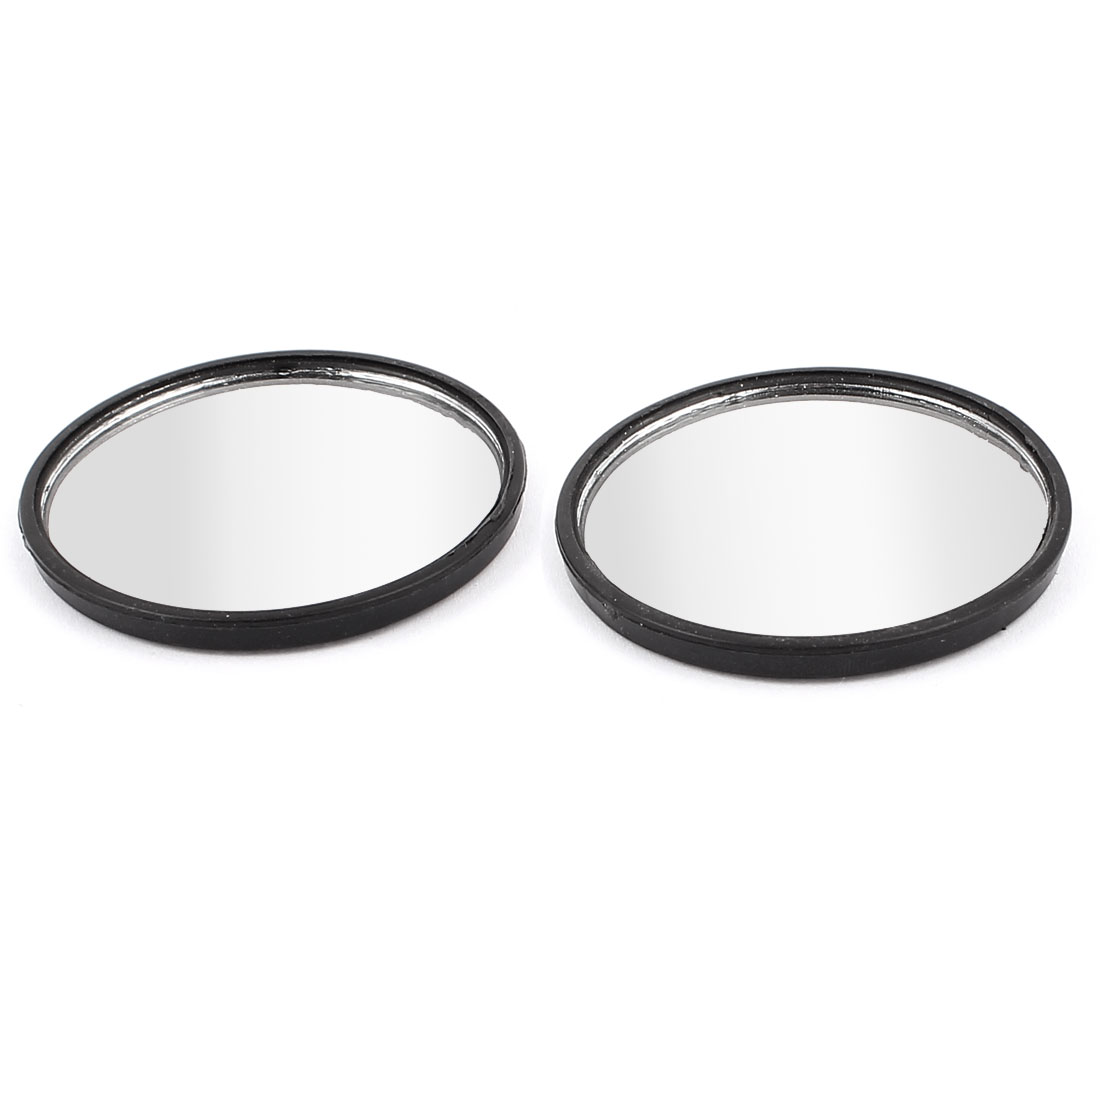 2pcs Plastic Shell Self Adhesive Base Blind Spot Rear View Rearview Mirror for Car Truck